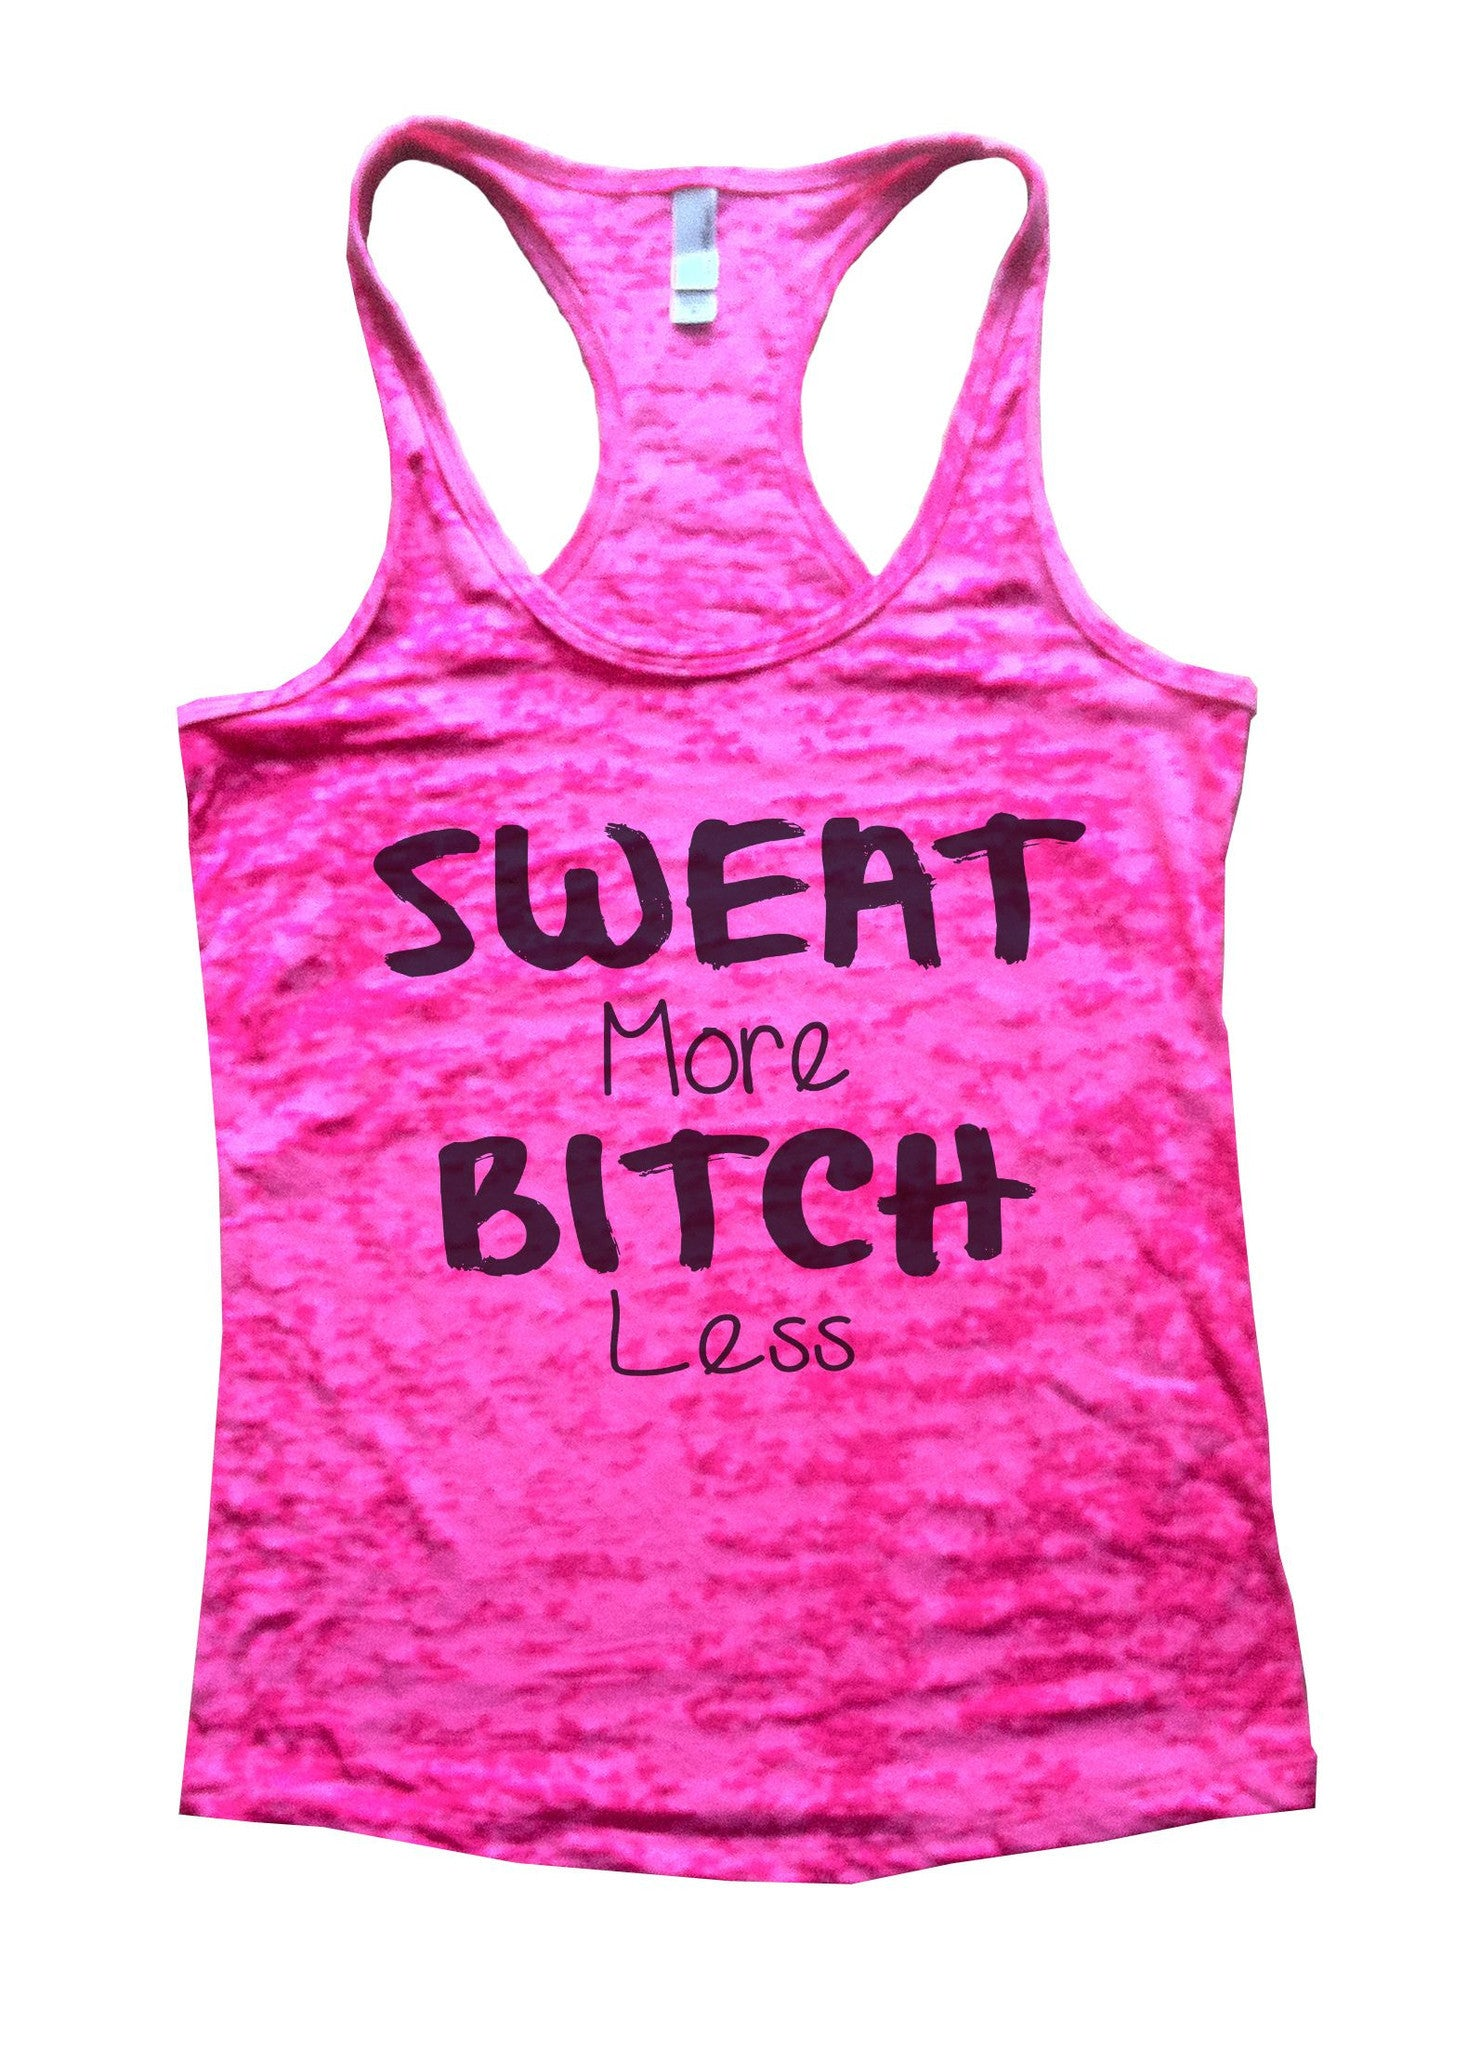 Sweat More Bitch Less Burnout Tank Top By BurnoutTankTops.com - 766 - Funny Shirts Tank Tops Burnouts and Triblends  - 6